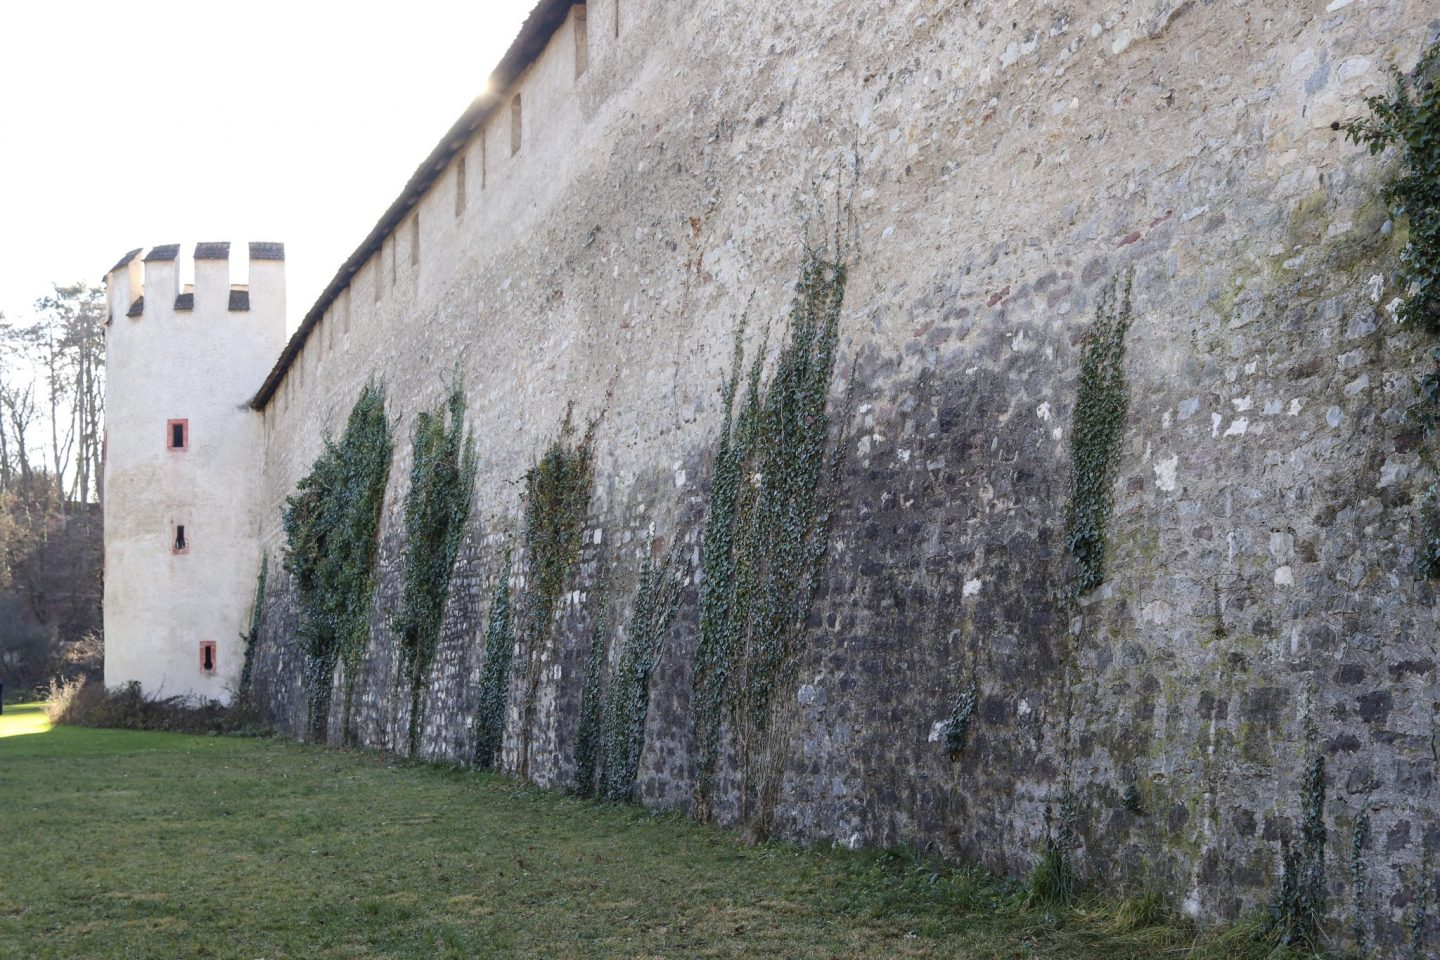 Basel City Walls, Switzerland